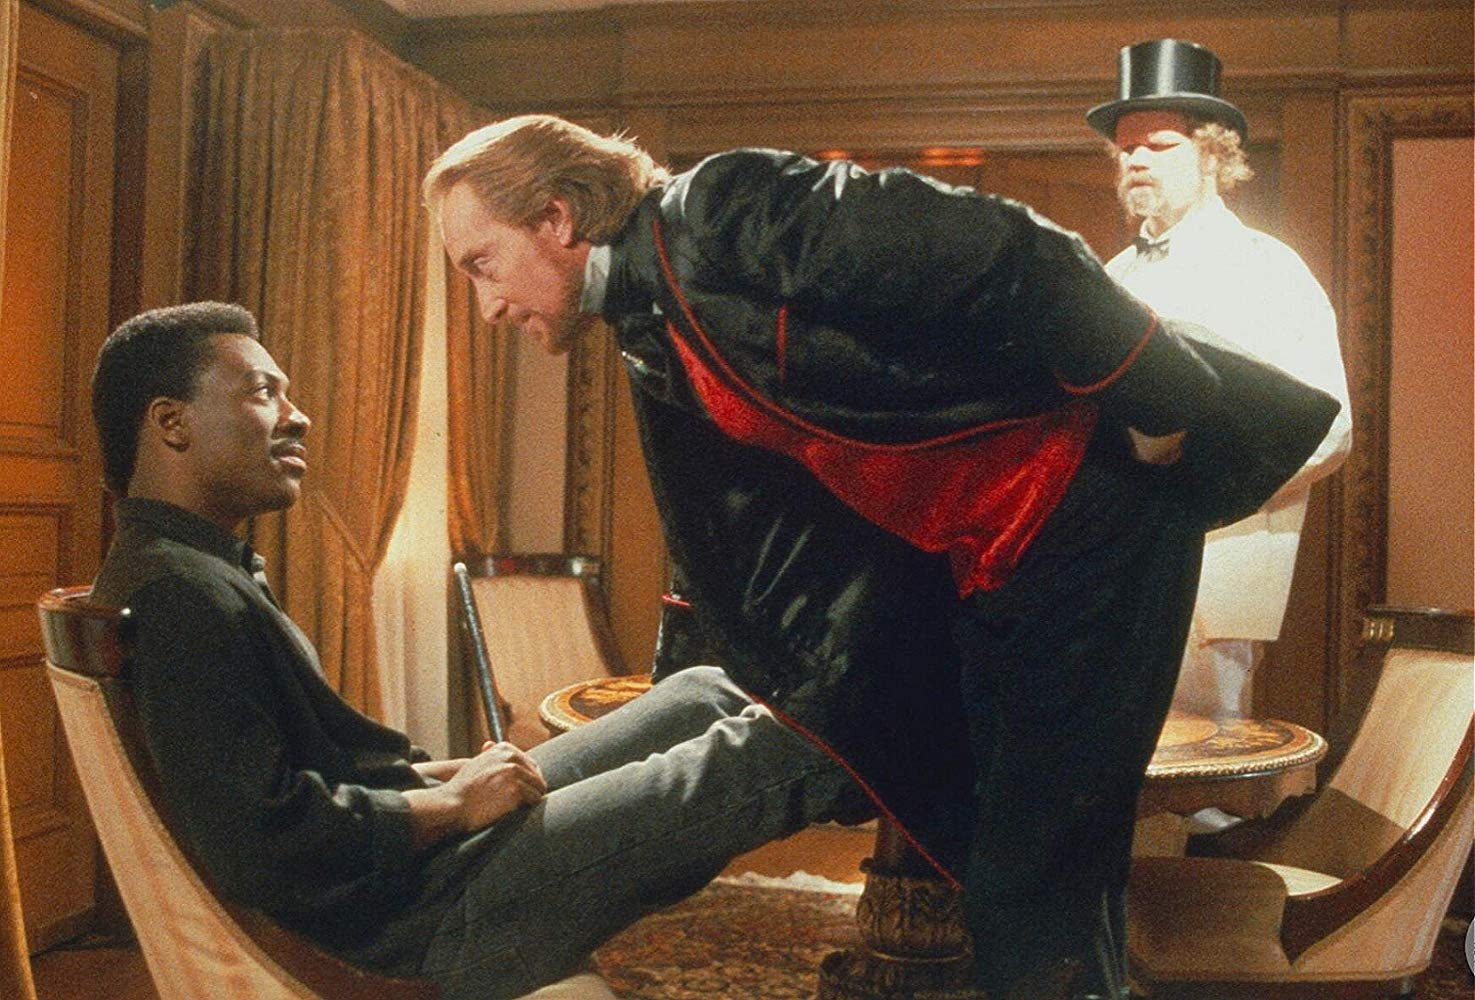 (l to r) Eddie Murphy with Charles Dance as the demonic Sardo Numspa in The Golden Child (1986)